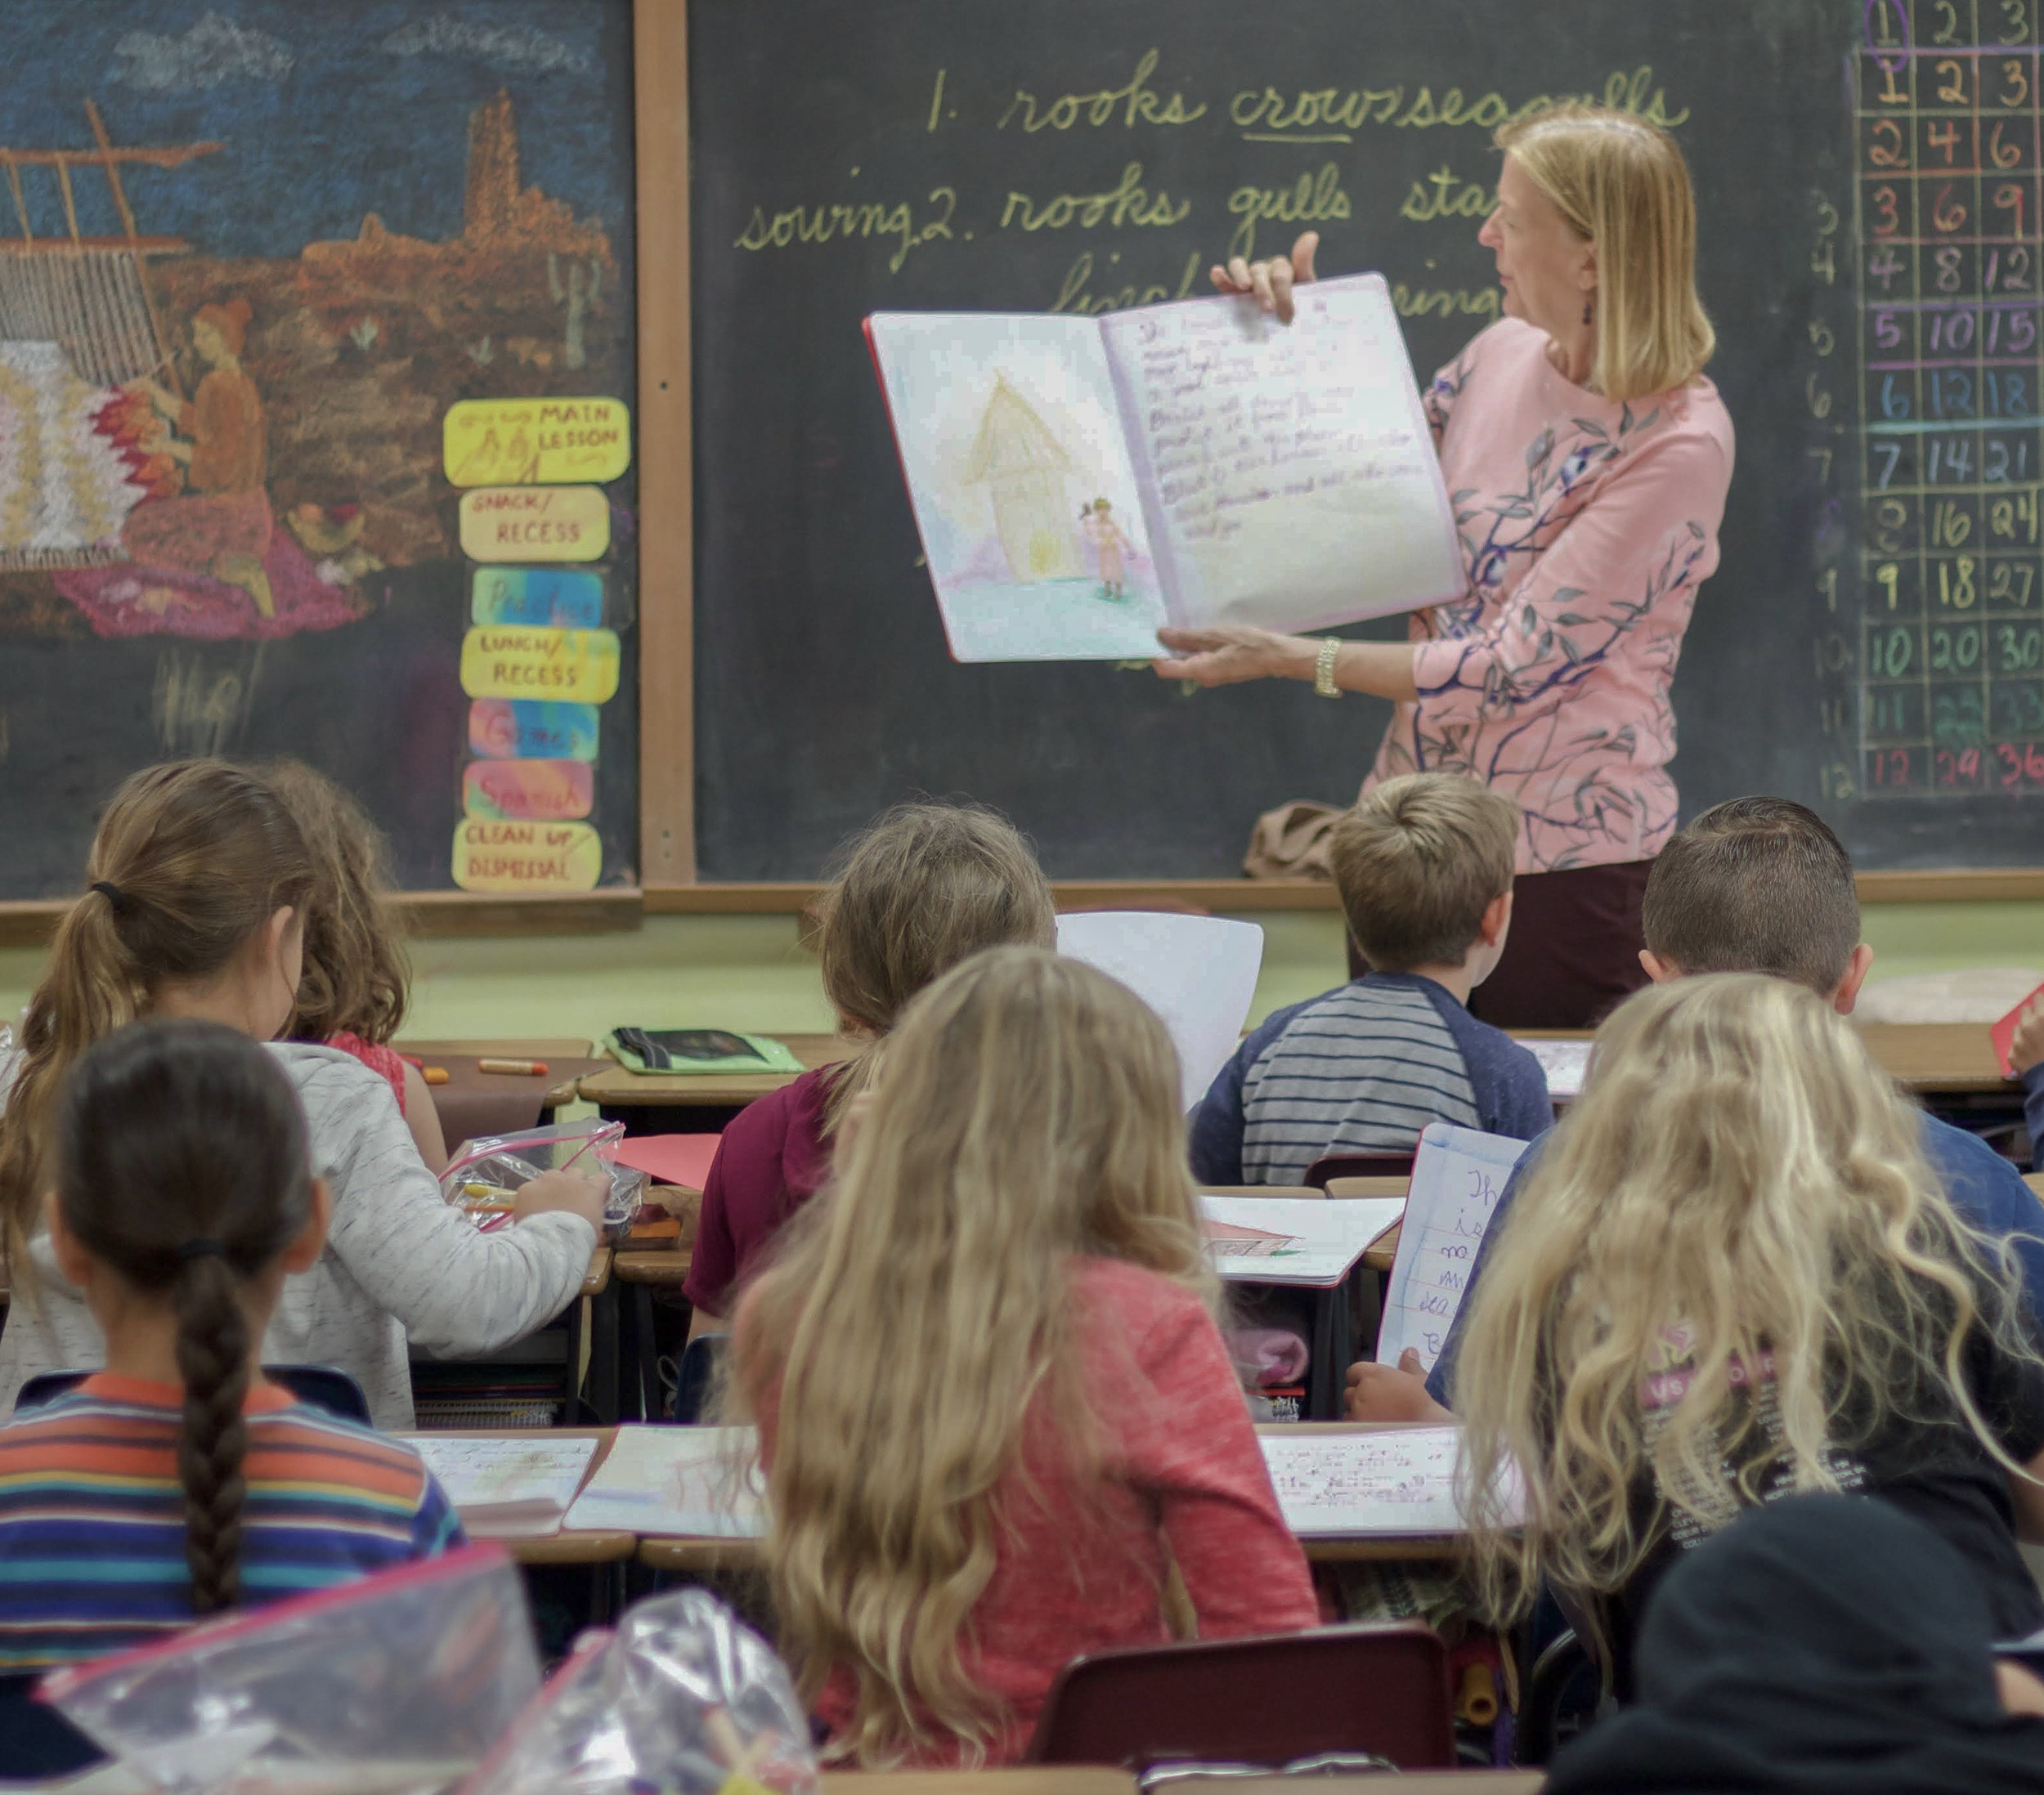 Waldorf Education - As a school guided by the Core Principles of Waldorf Education, there are a few things we do differently than the typical elementary school.